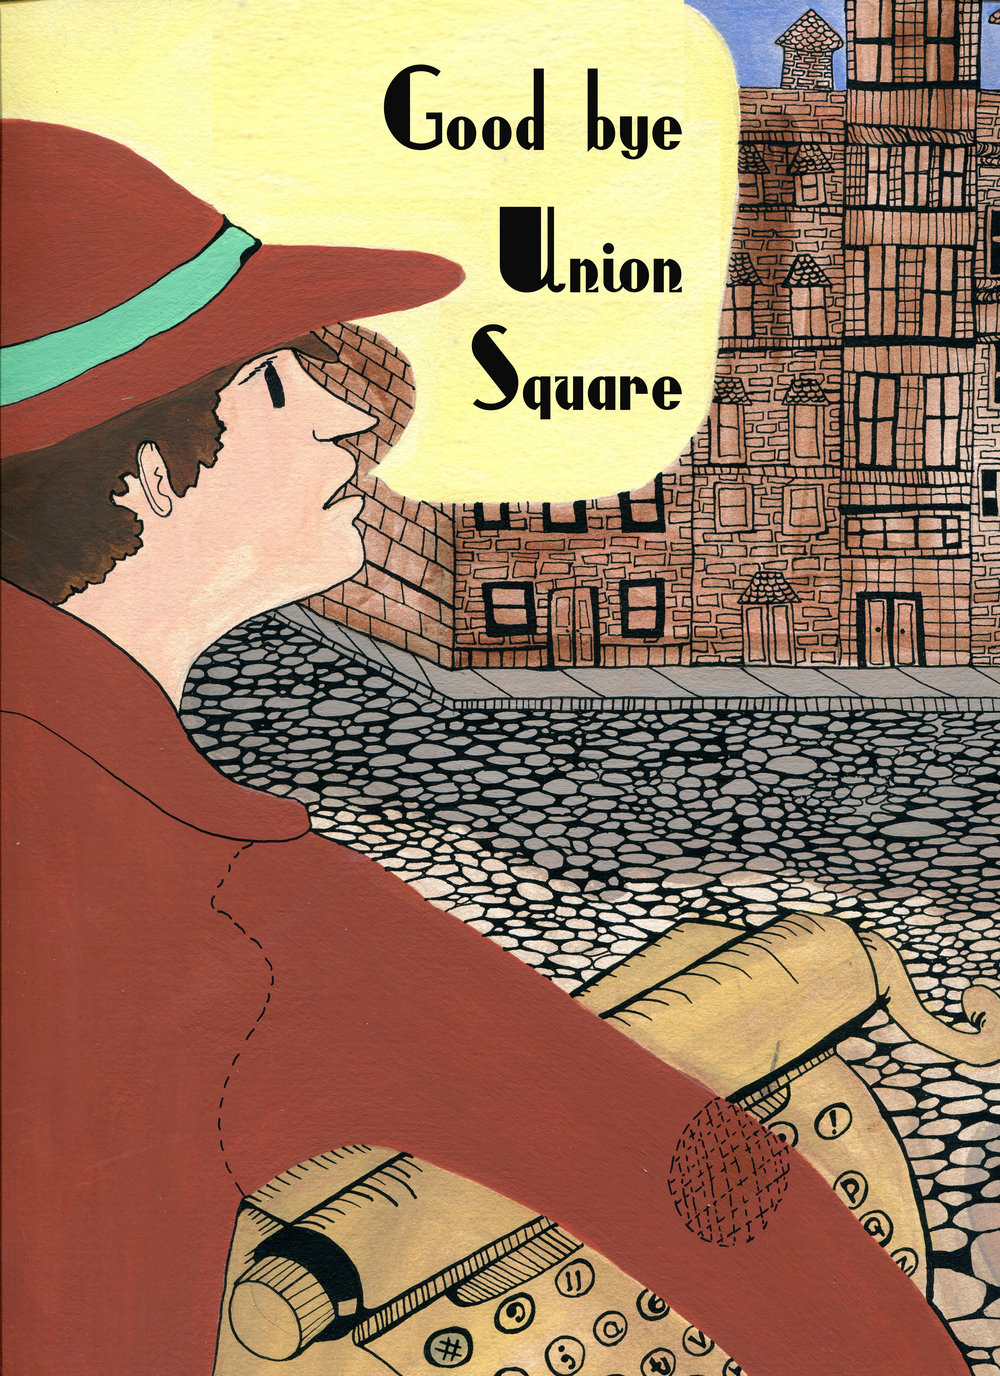 good bye union square.jpg